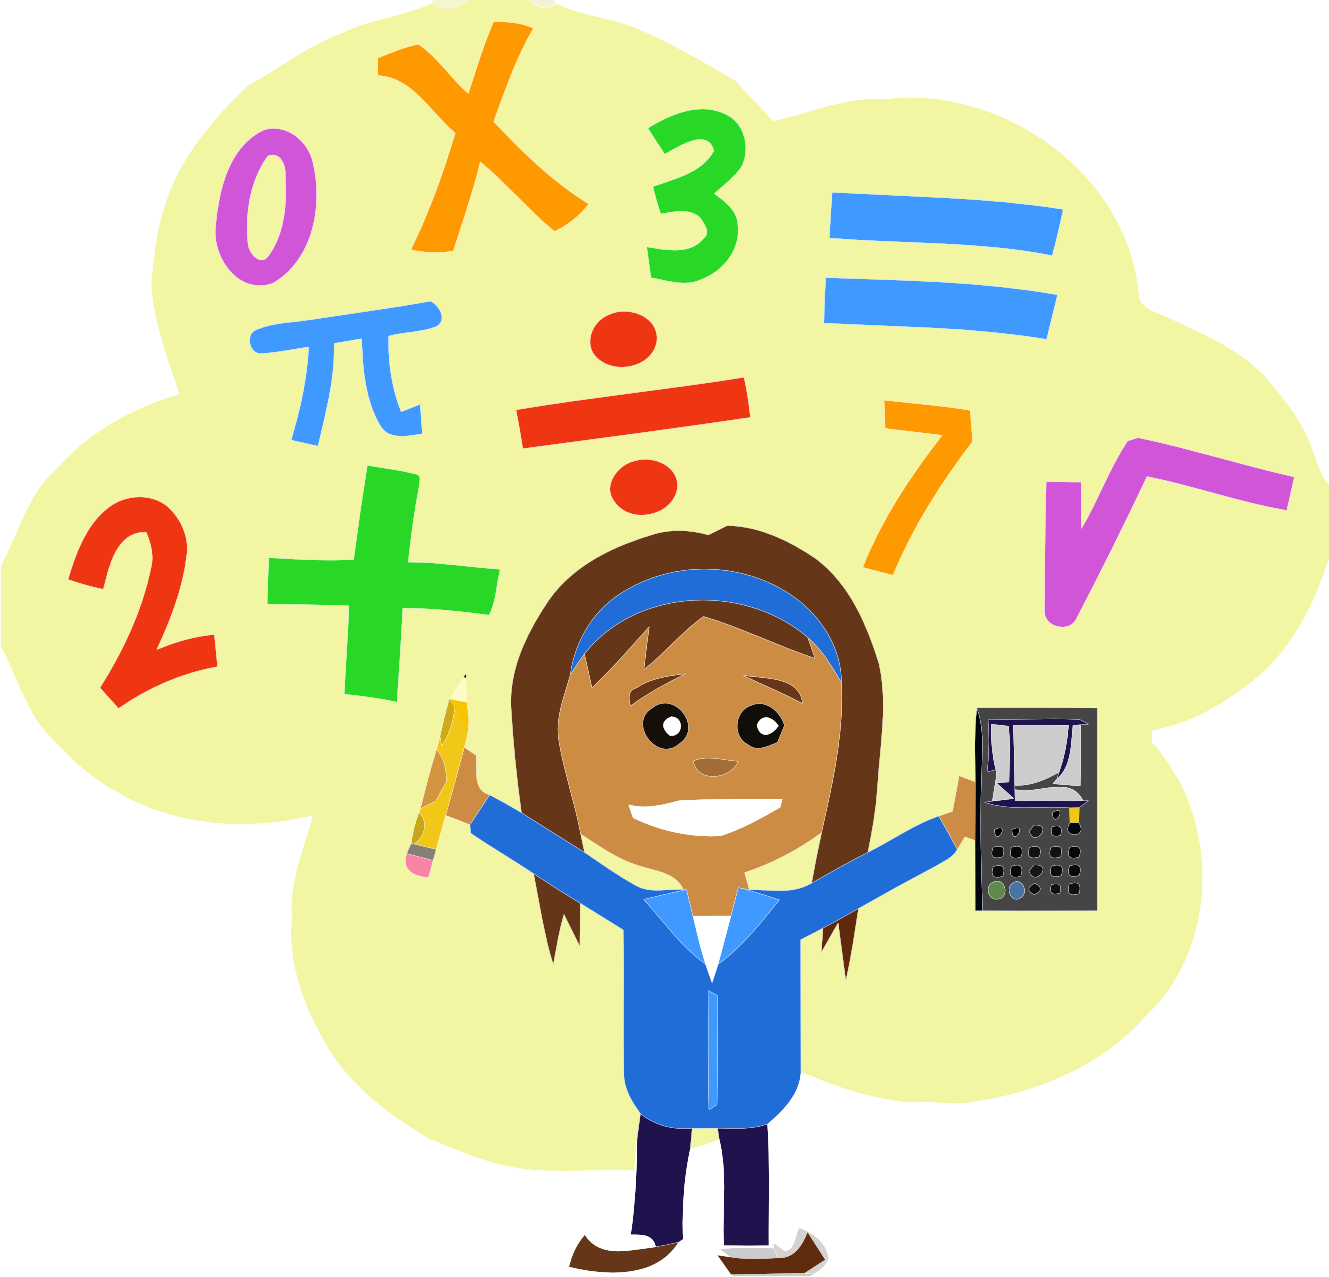 Multiplication clipart cartoon character. For free download and